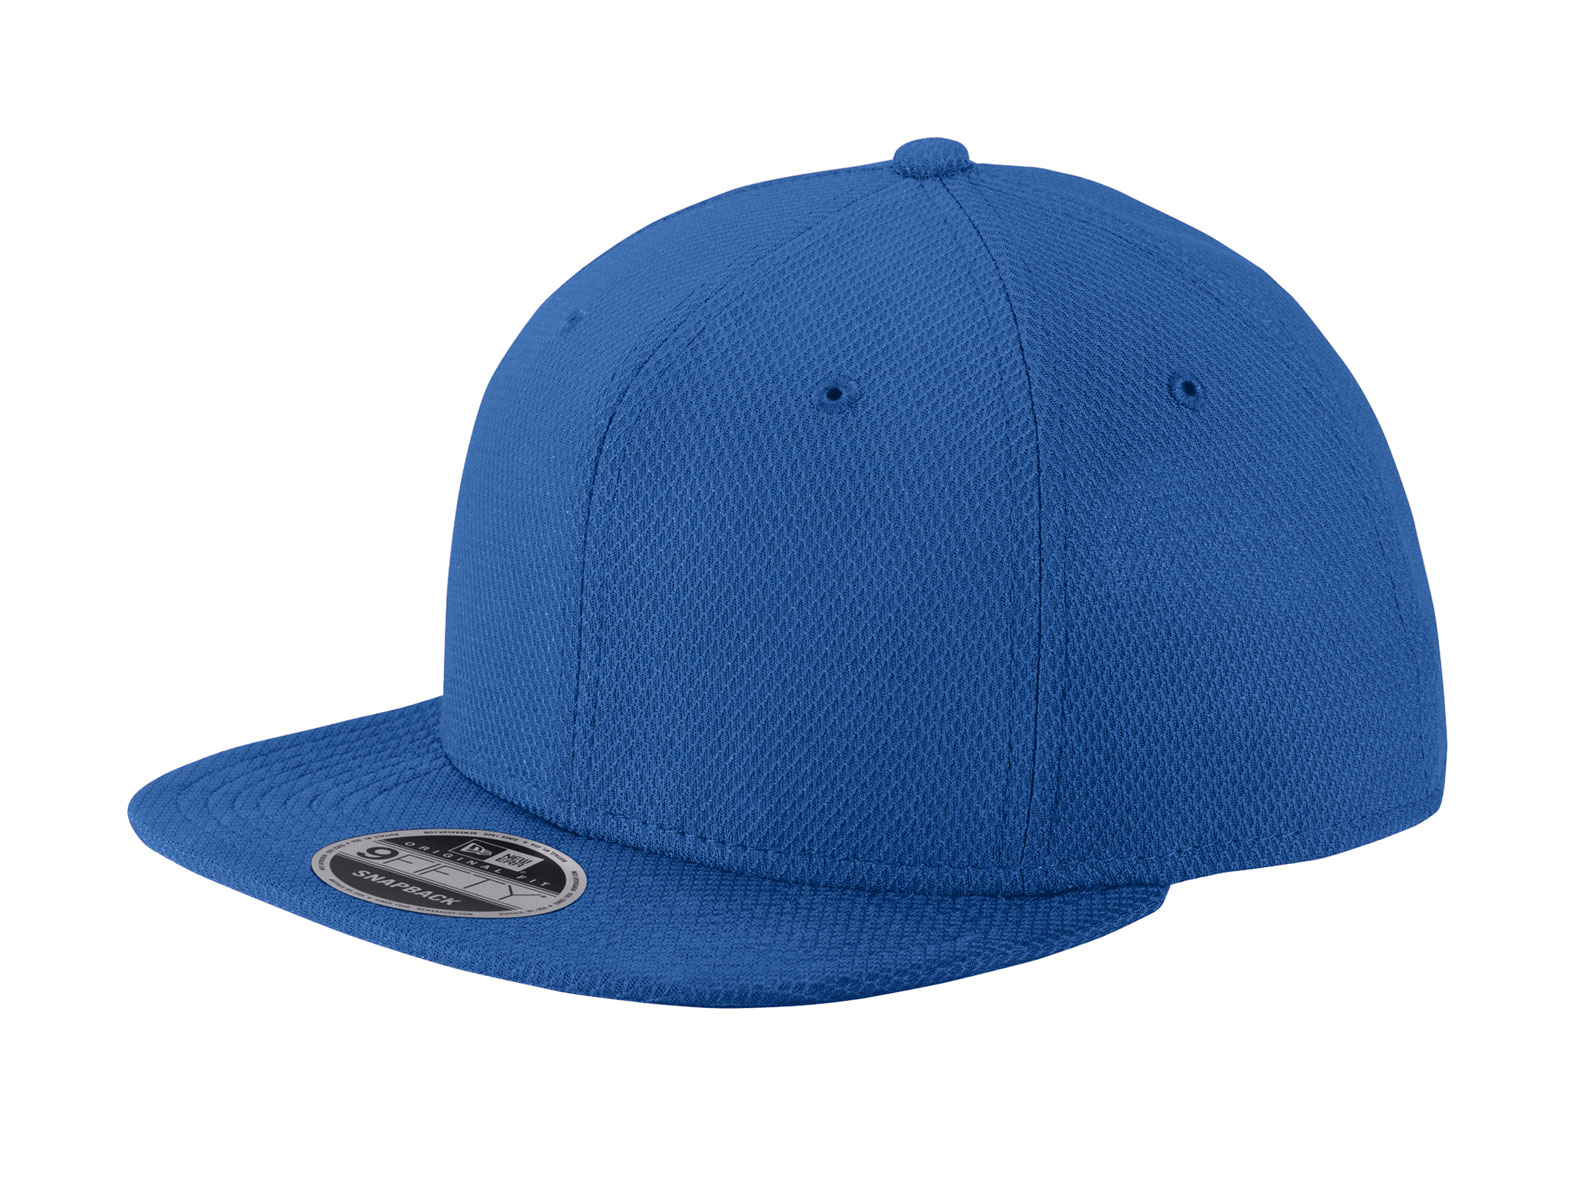 New Era® Youth Diamond Era Flat Bill Snapback Cap